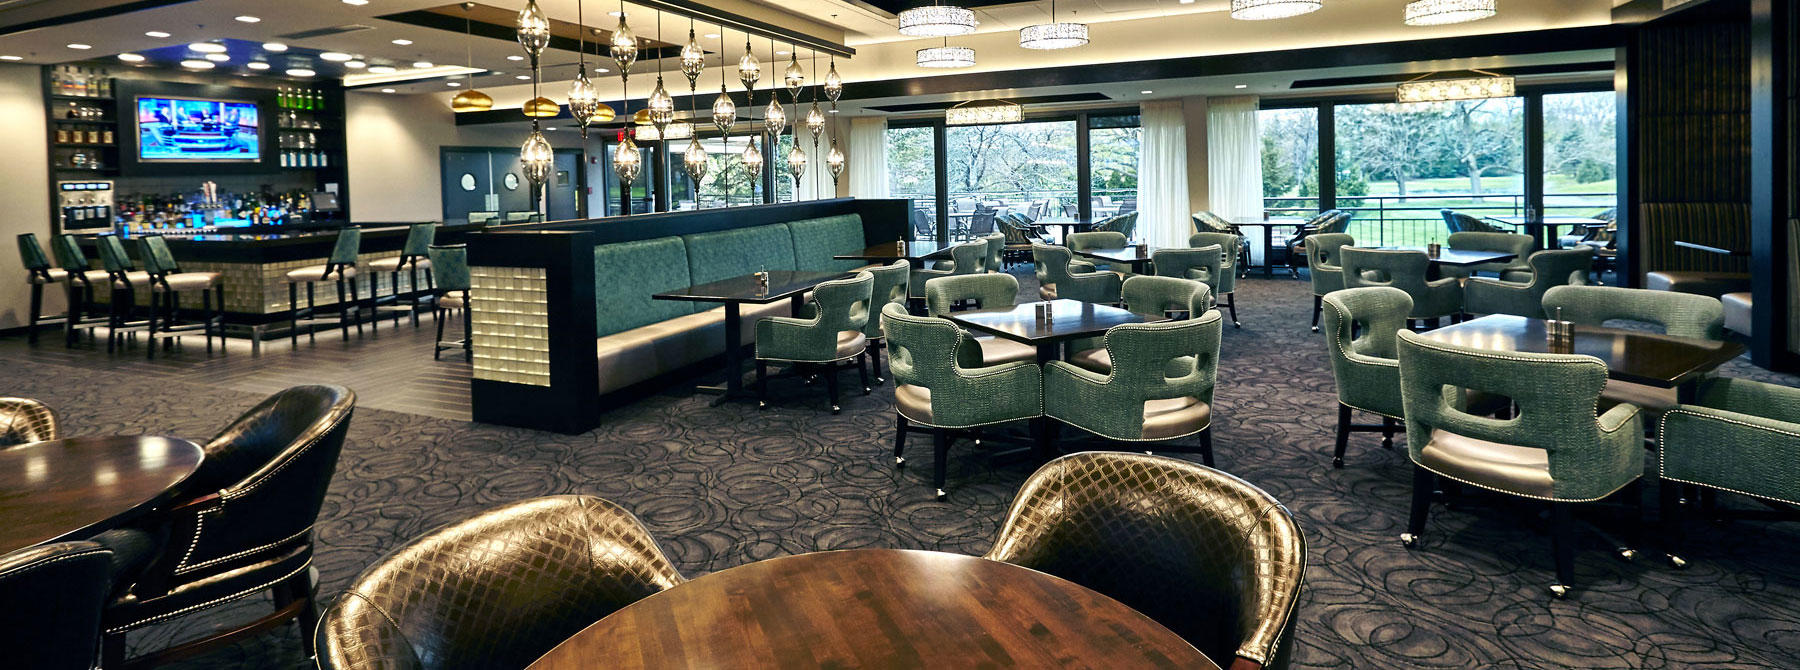 Ravinia-Green_Riverwood_IL-bar-grill-Main1_frontpagehero